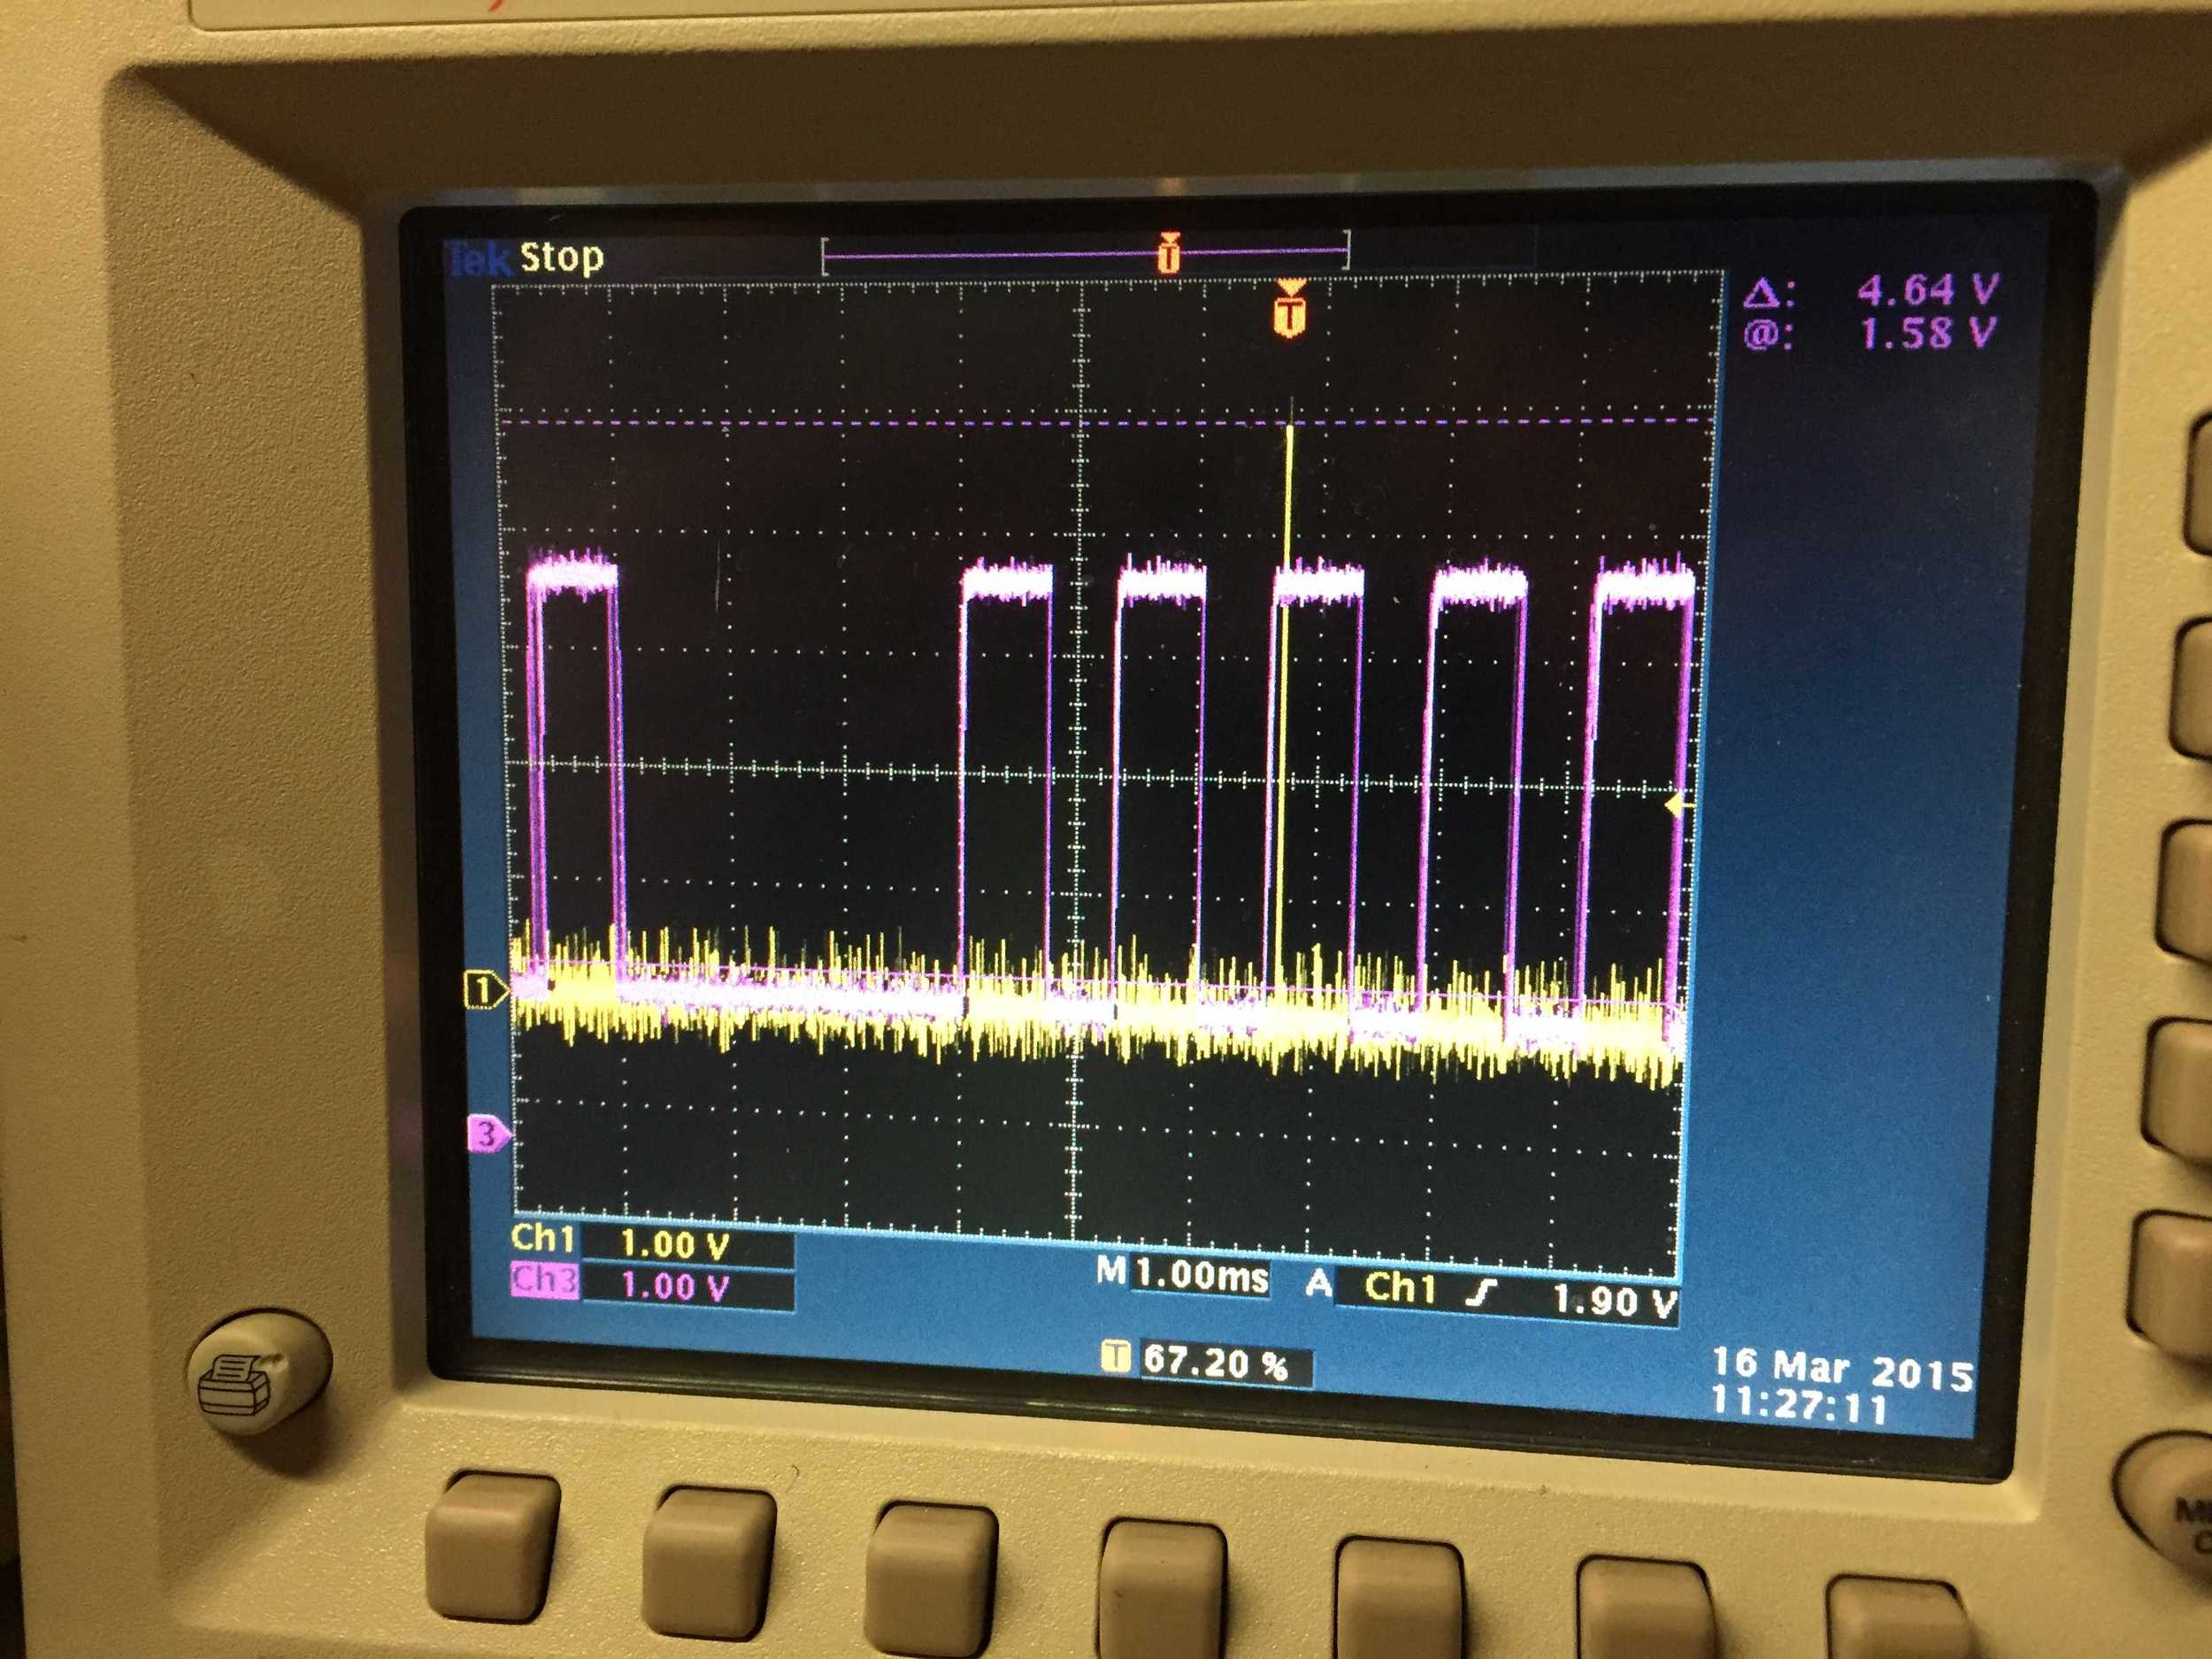 showing encoder Z signal (happens once per revolution in yellow) with engine 60 tooth crank encoder (pink).